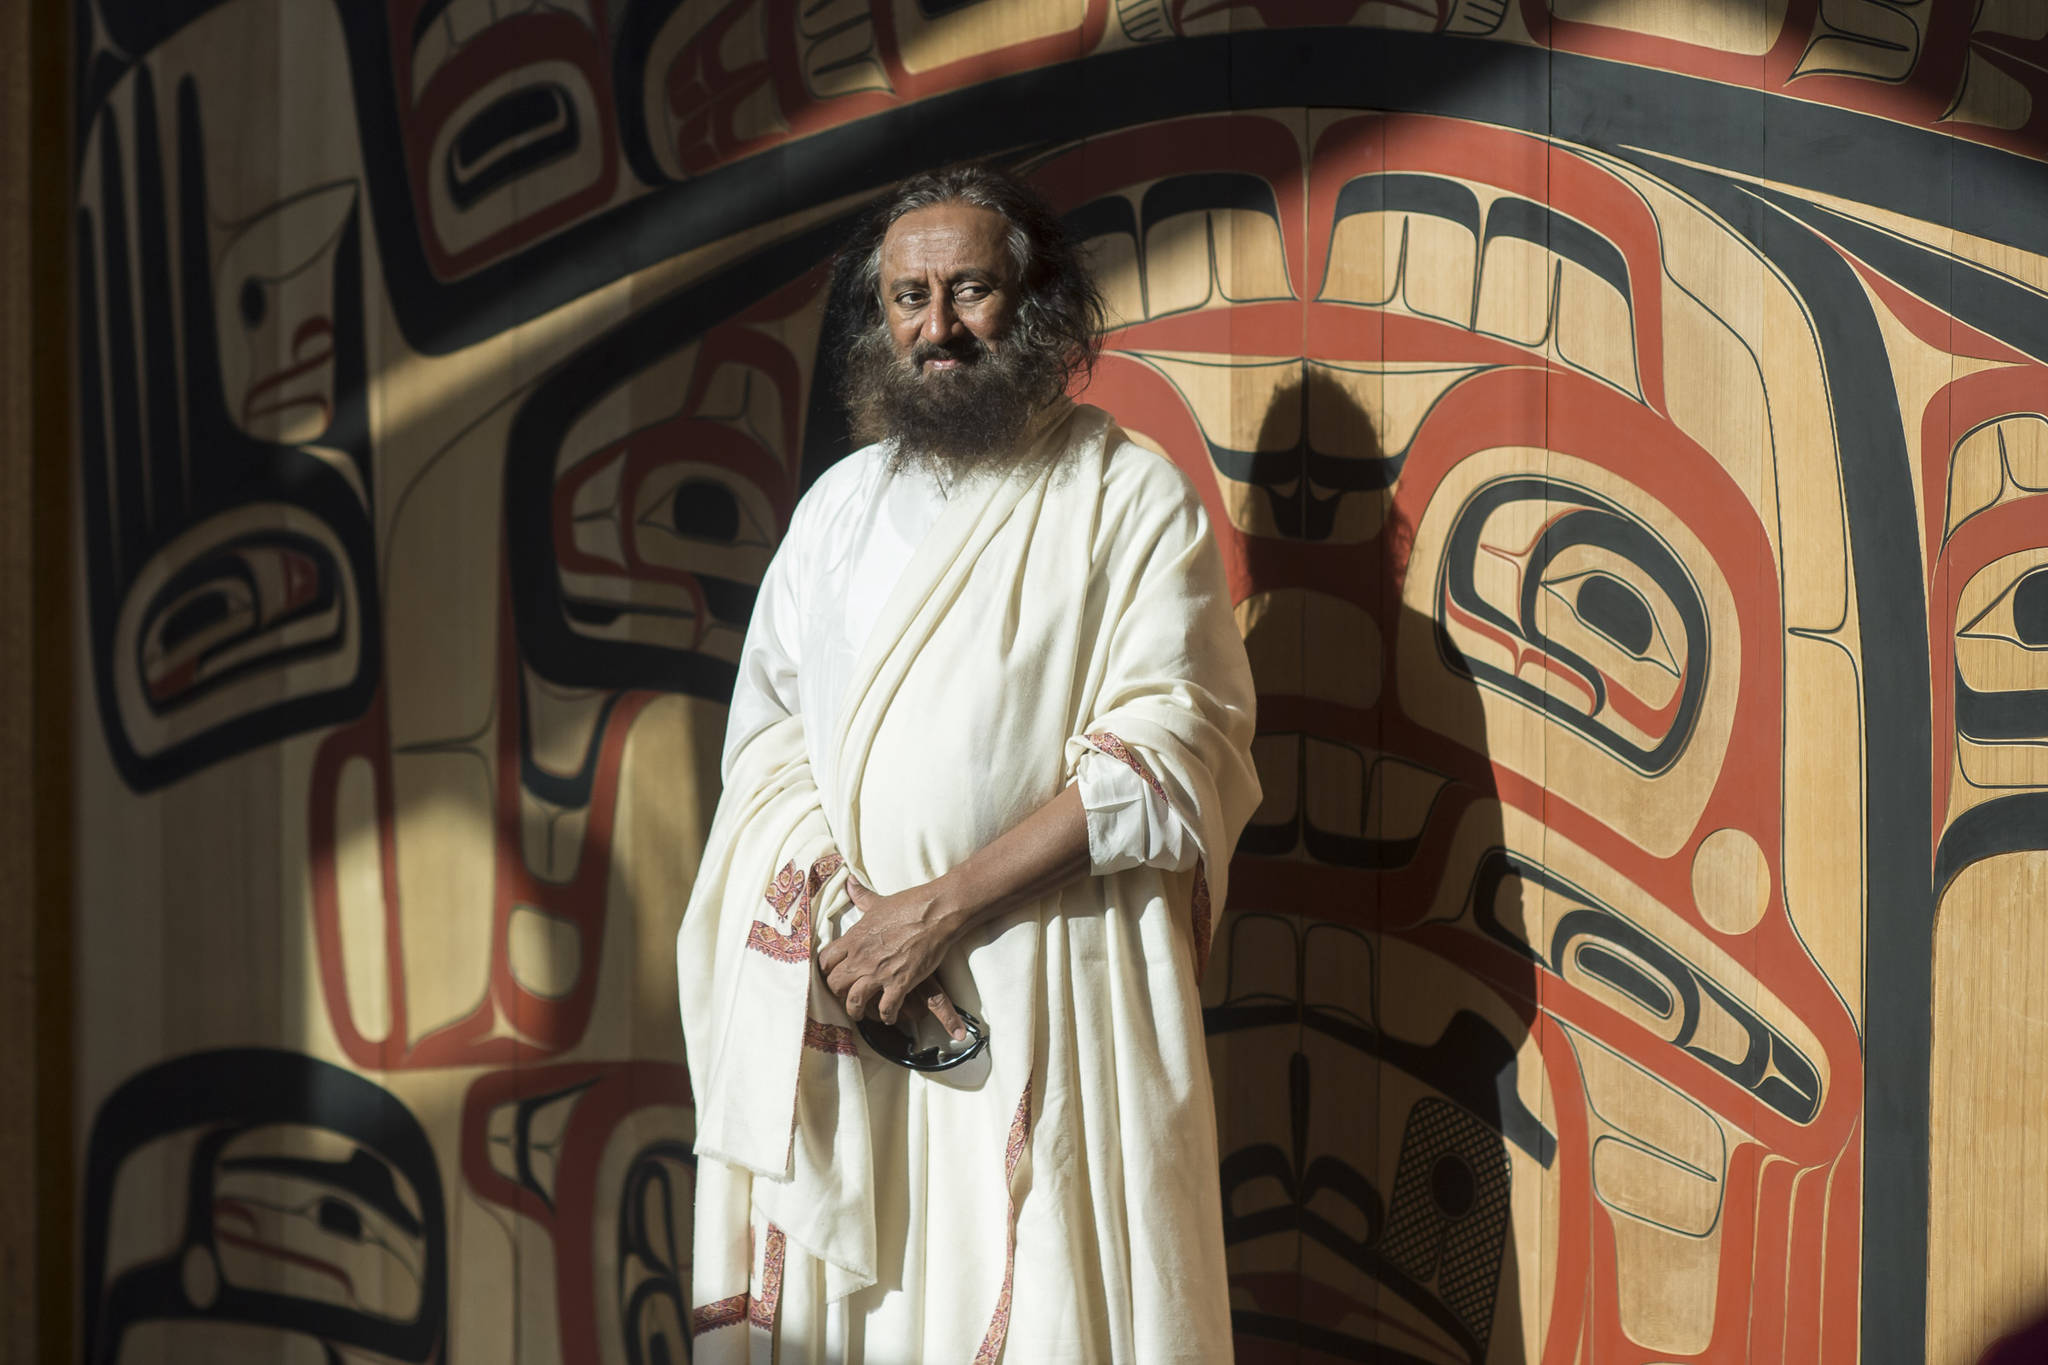 Spiritual leader Sri Sri Ravi Shankar of The Art of Living Foundation visits the Walter Soboleff Center on Tuesday, July 31, 2018, as part of his West Coast Tour that also includes San Francisco and Seattle. (Michael Penn | Juneau Empire)